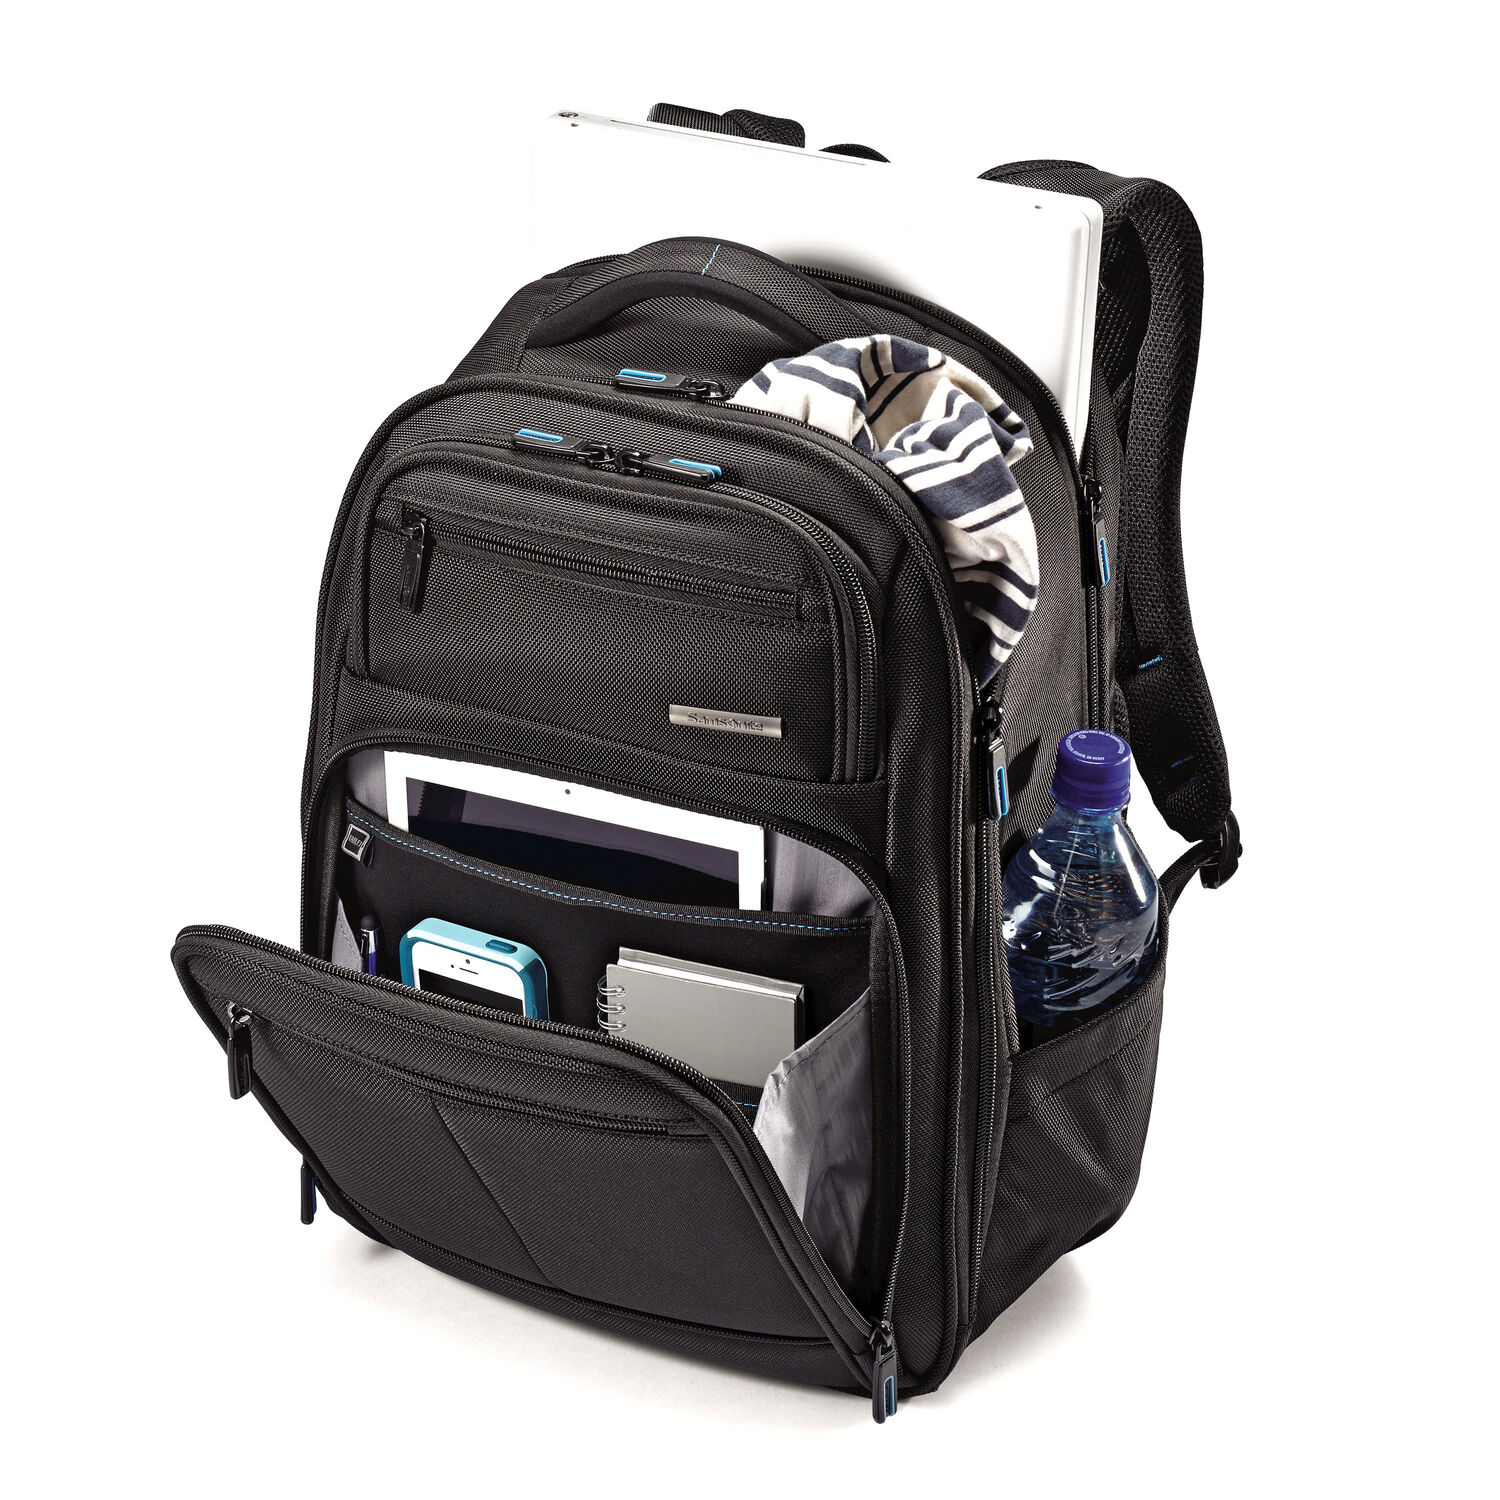 Samsonite novex perfect fit laptop backpack in the color black